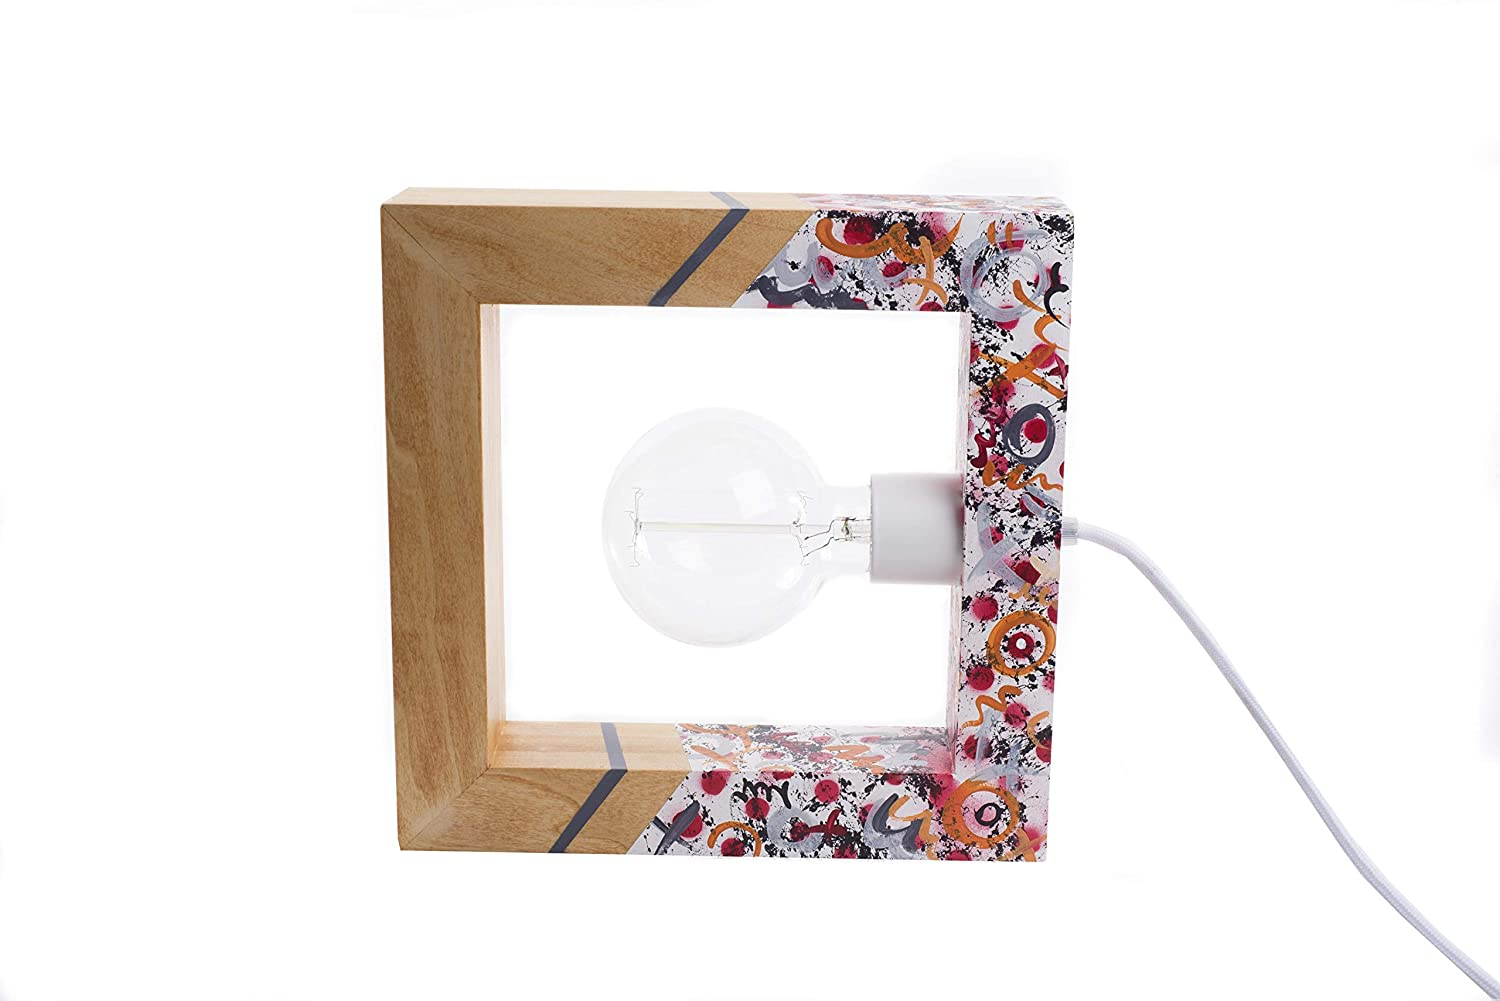 Amazon.com: Artistic, Graffiti, handmade Table lamp Clorindo Graffiti frame: Handmade